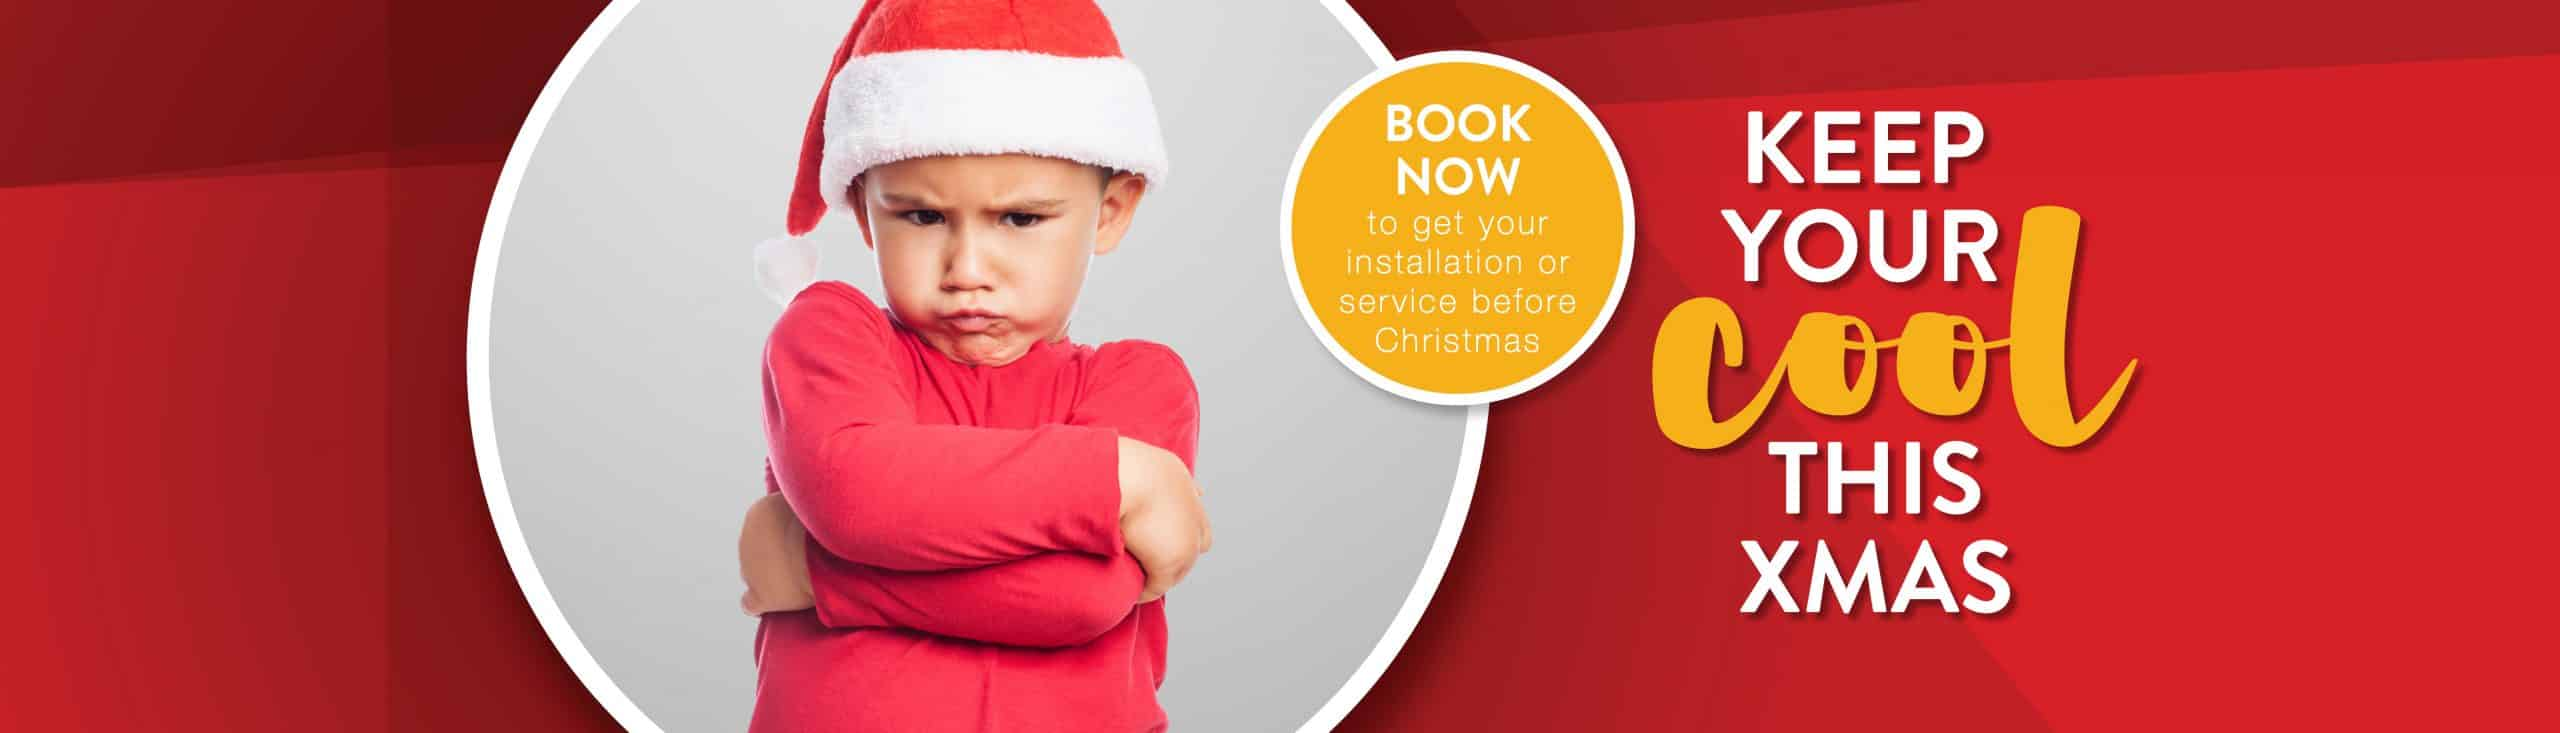 Keep Your Cool This Xmas Clements Air Conditioning